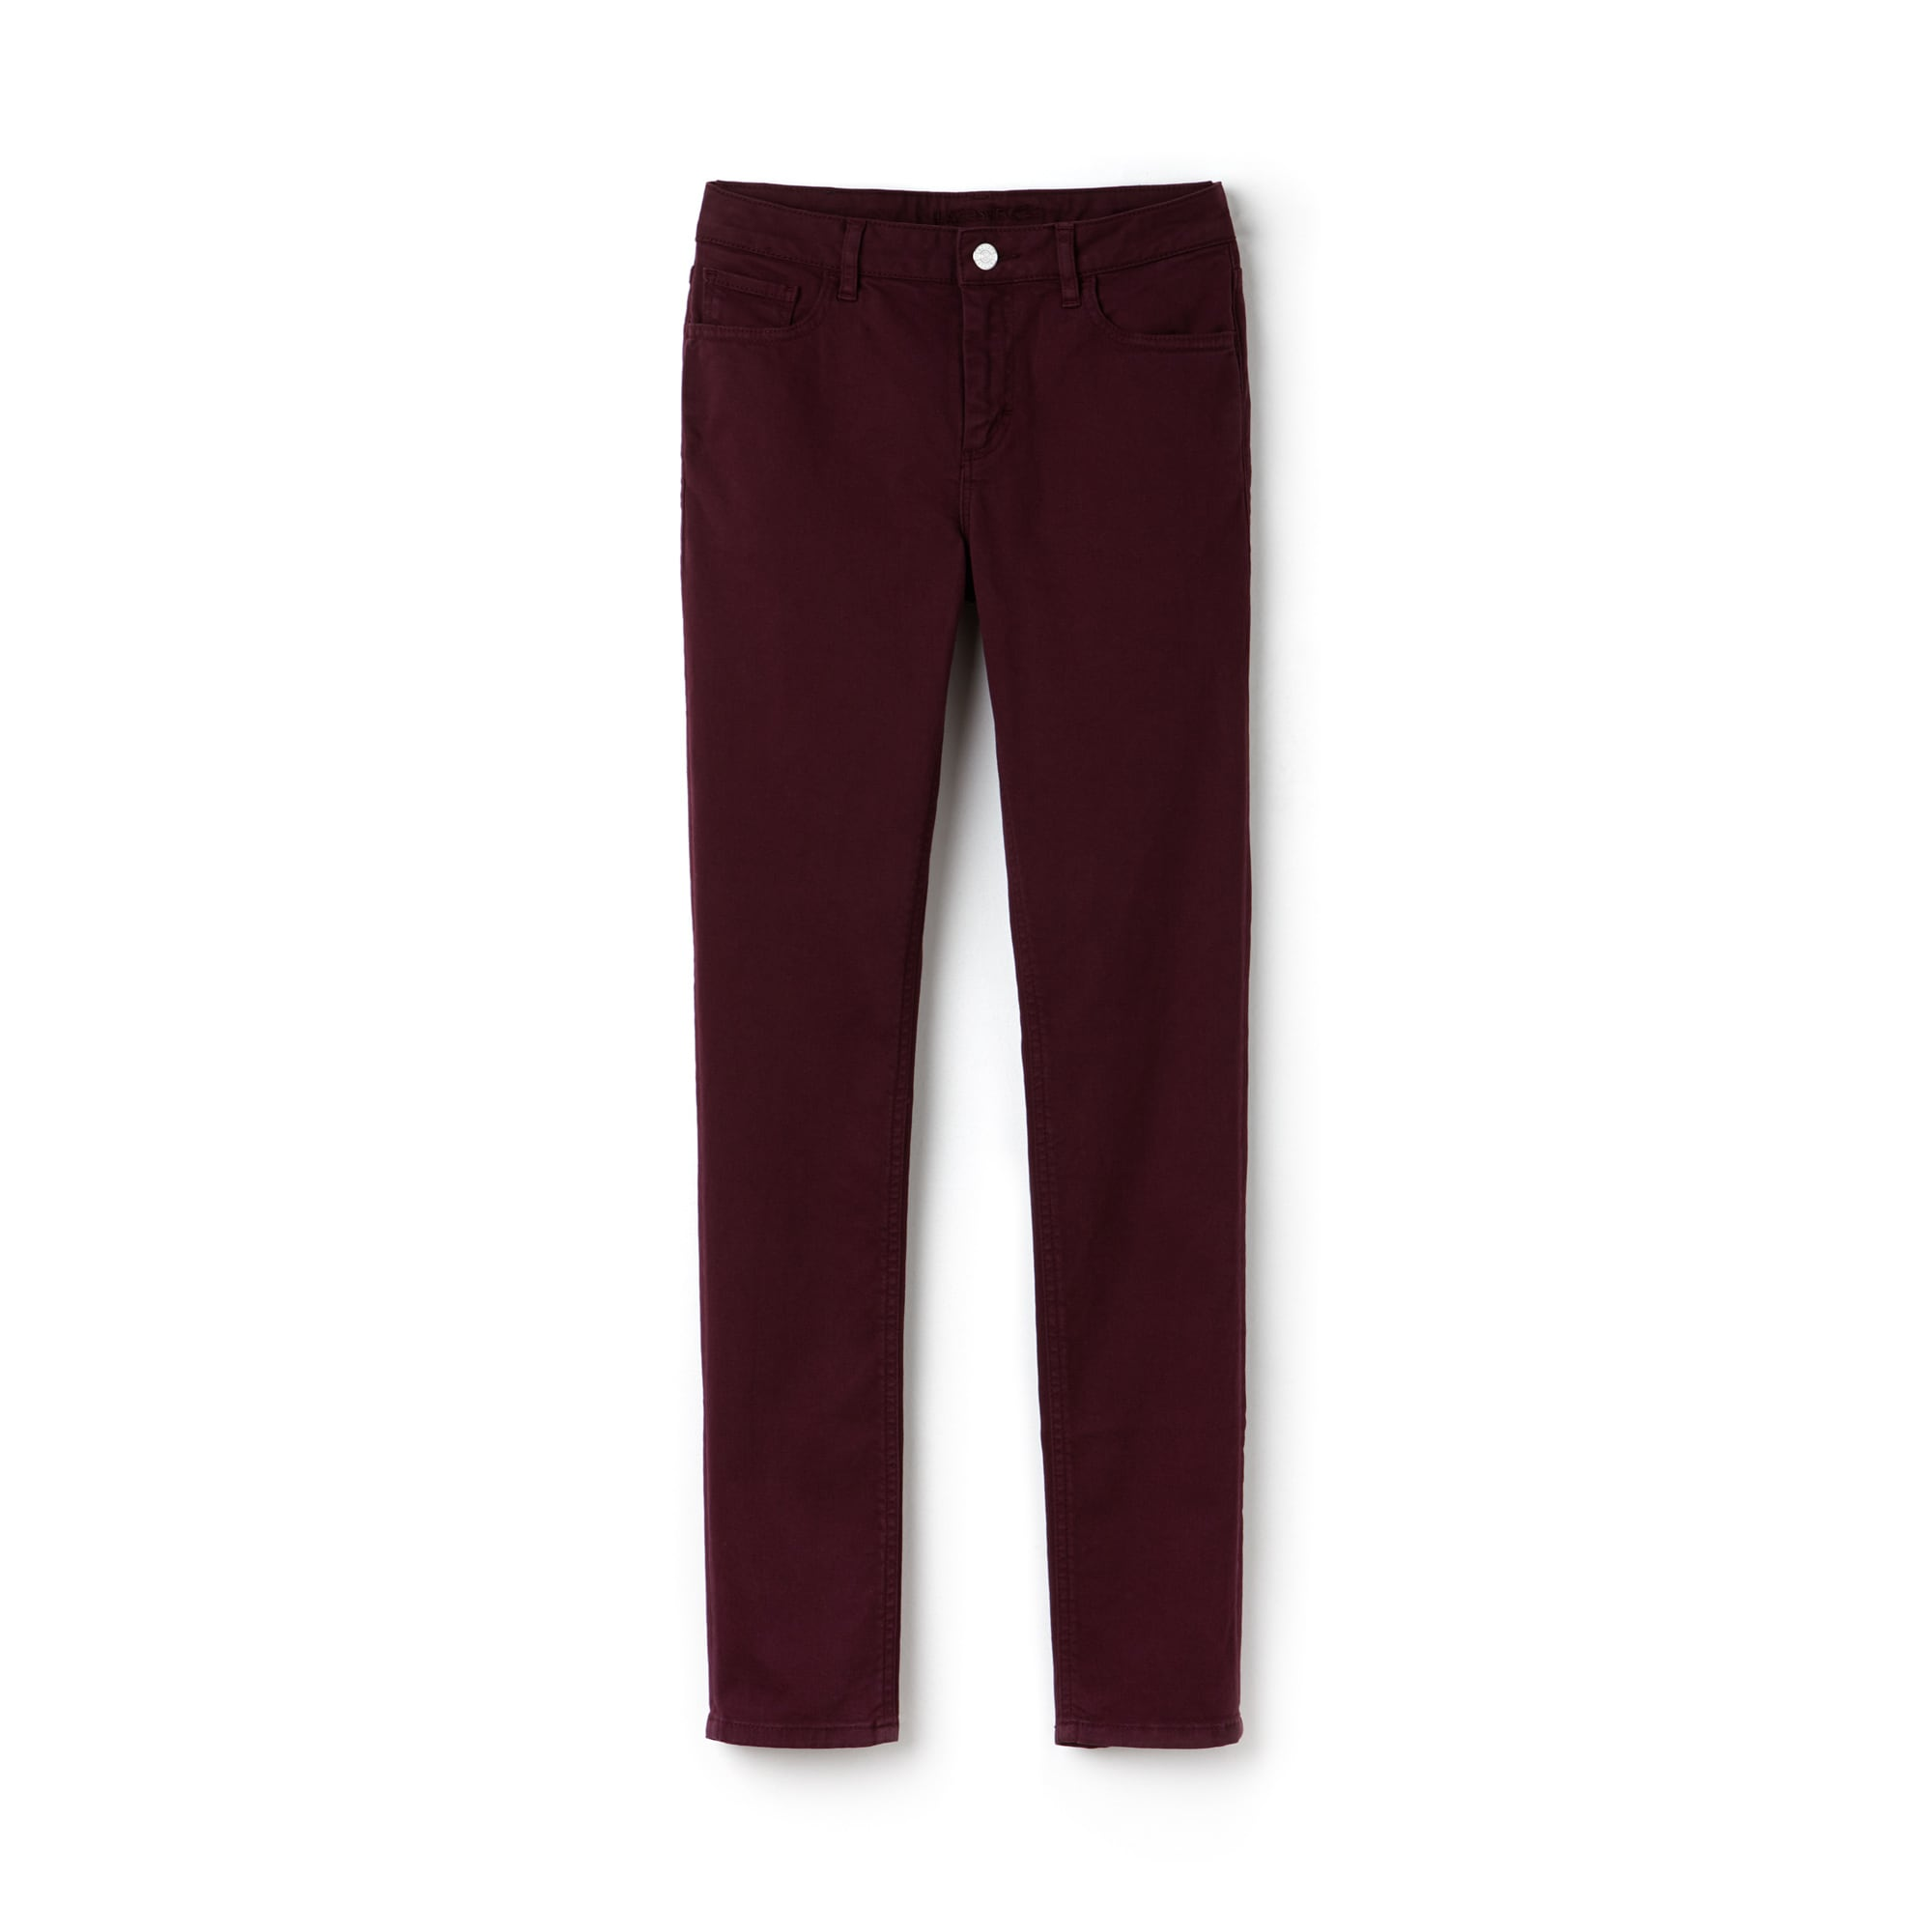 라코스테 Lacoste Womens Slim Fit Stretch Cotton Denim Jeans,bordeaux